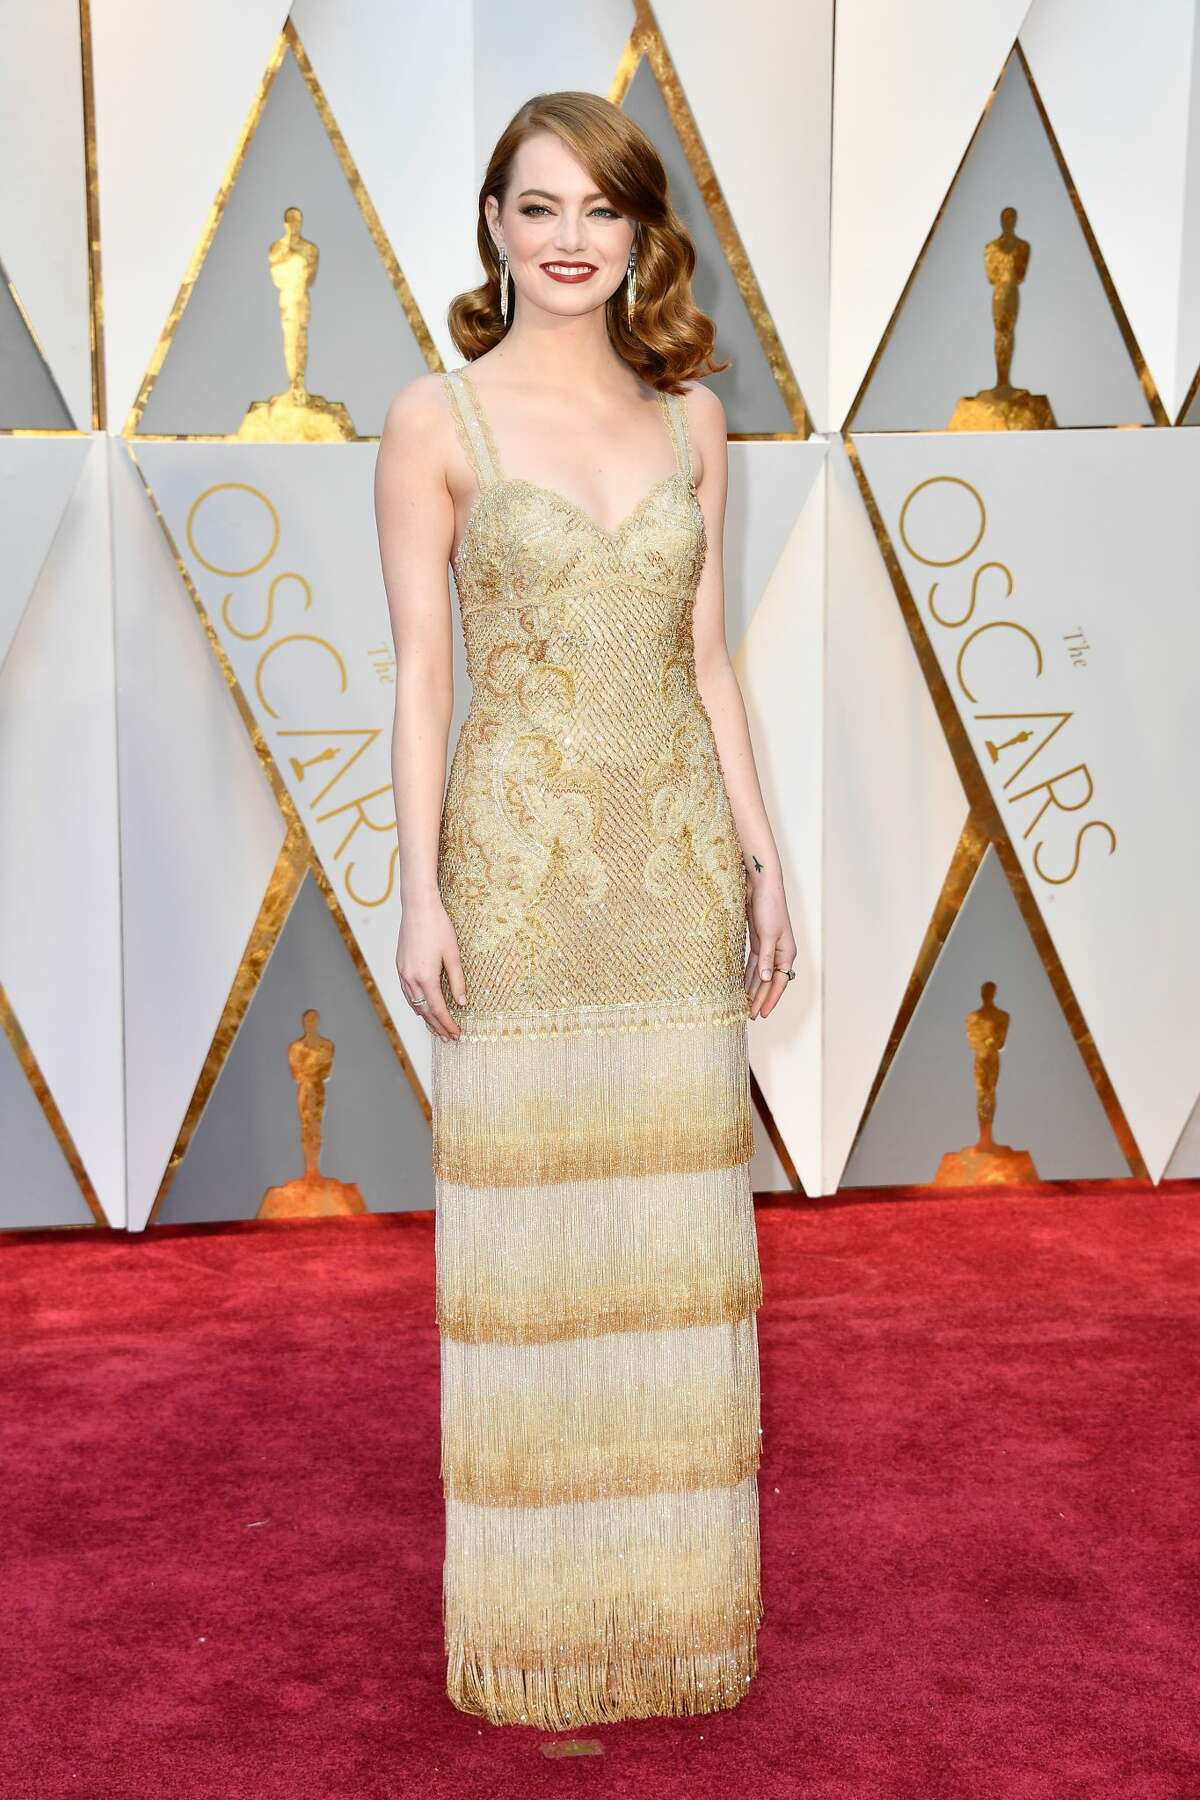 Actor Emma Stone attends the 89th Annual Academy Awards at Hollywood & Highland Center on February 26, 2017 in Hollywood, California.